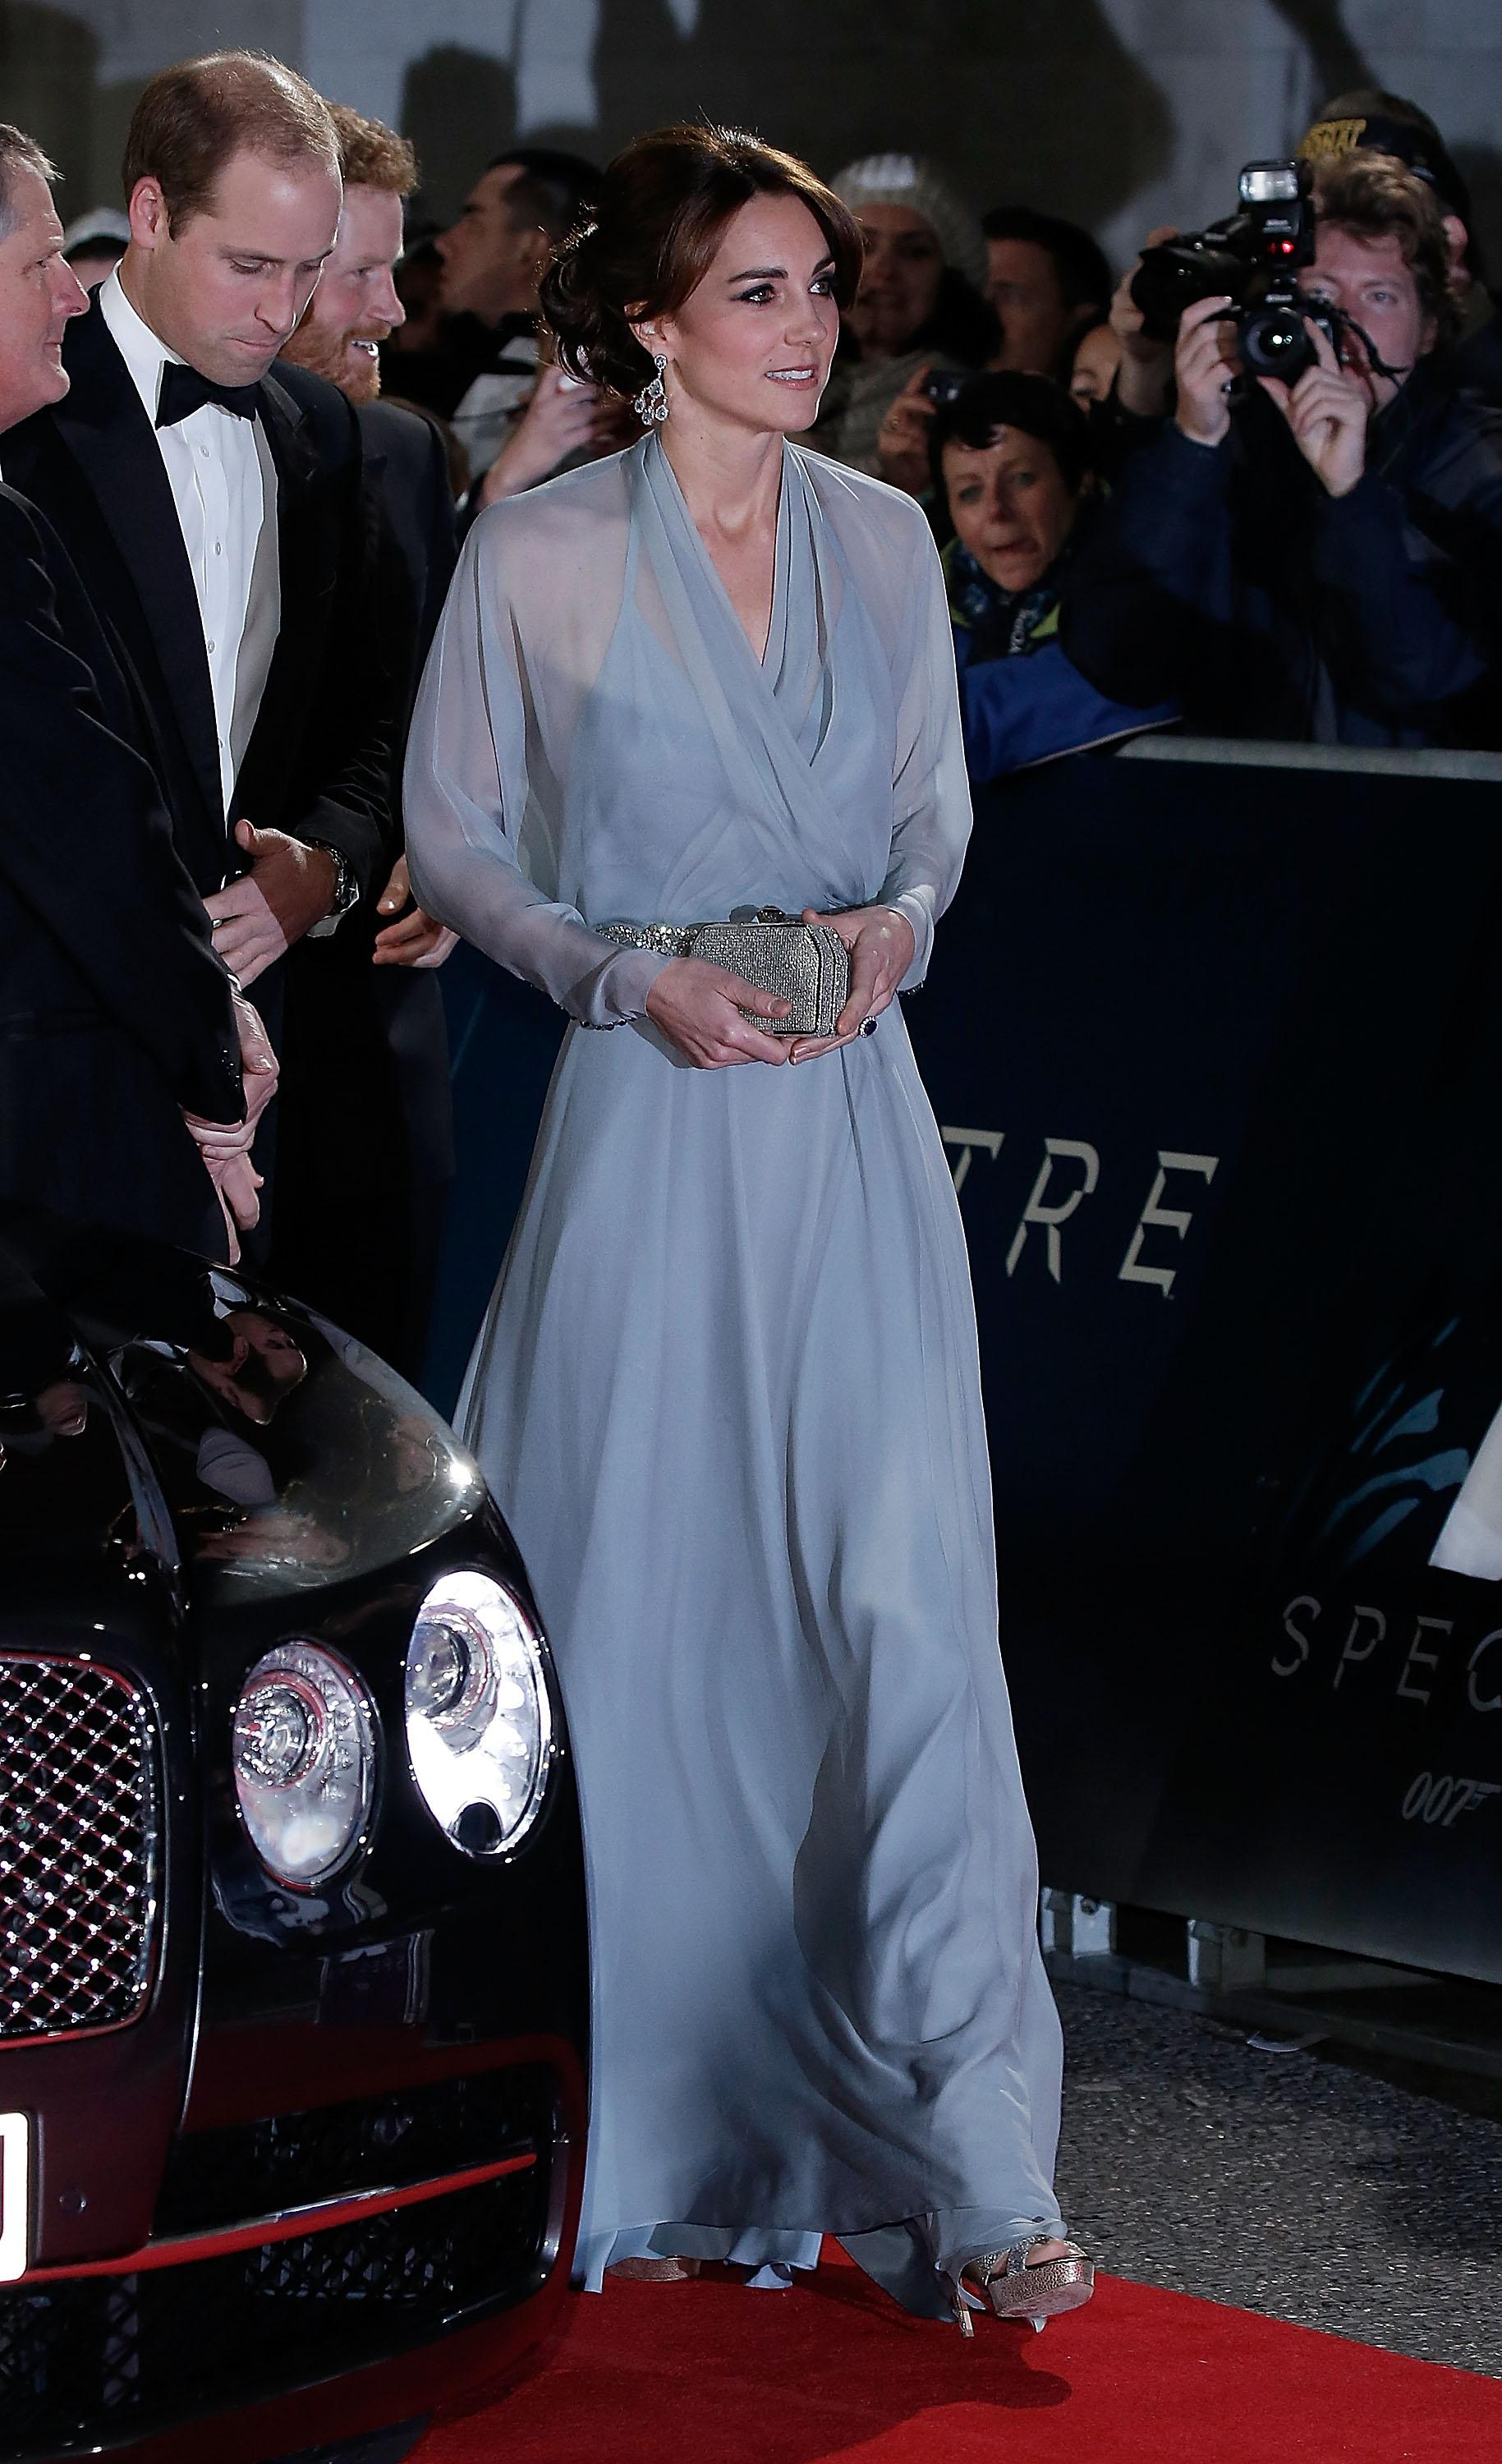 kate spectre premiere dress